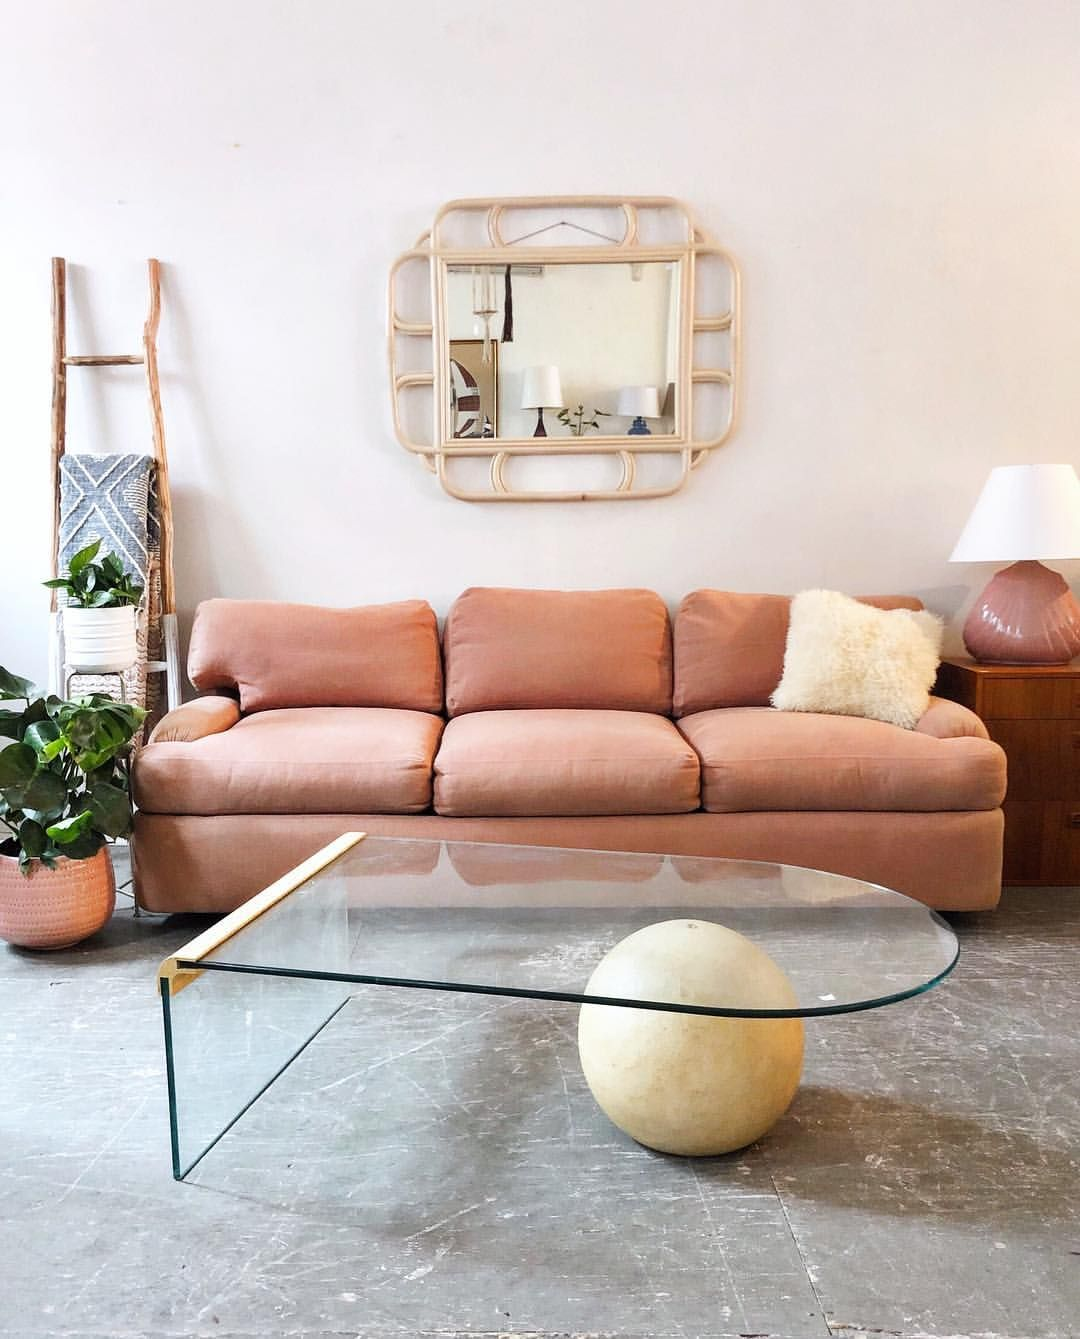 Pink Directional Sofa and Waterfall